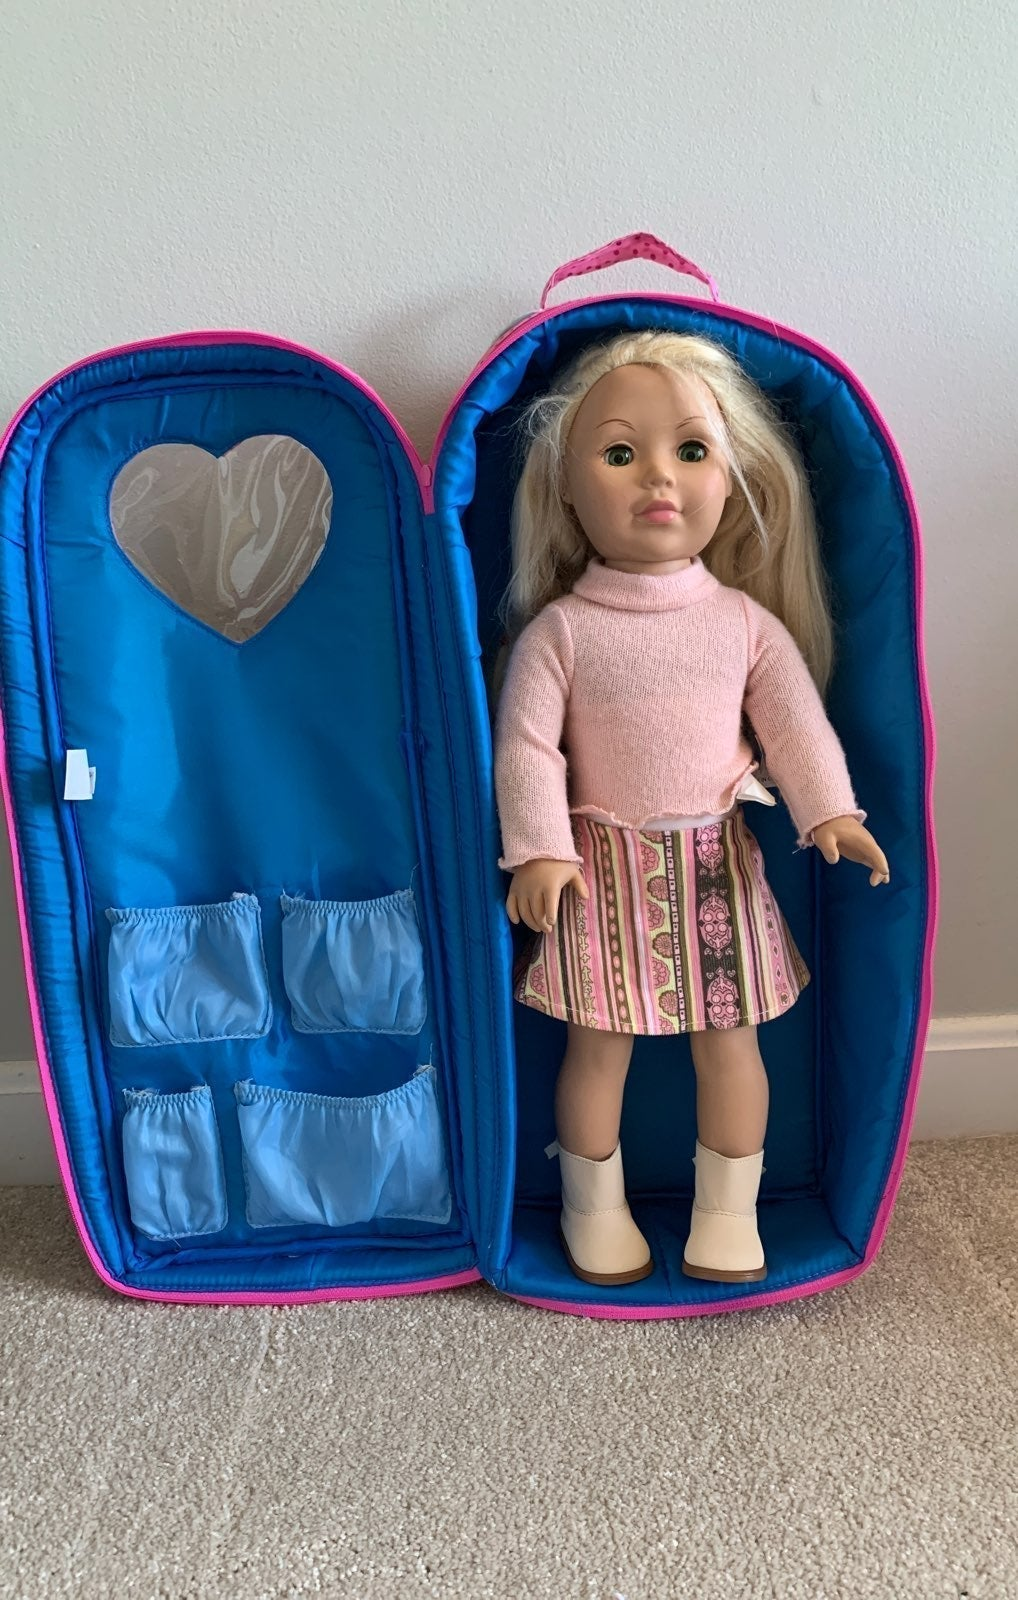 madame alexander doll w/ case